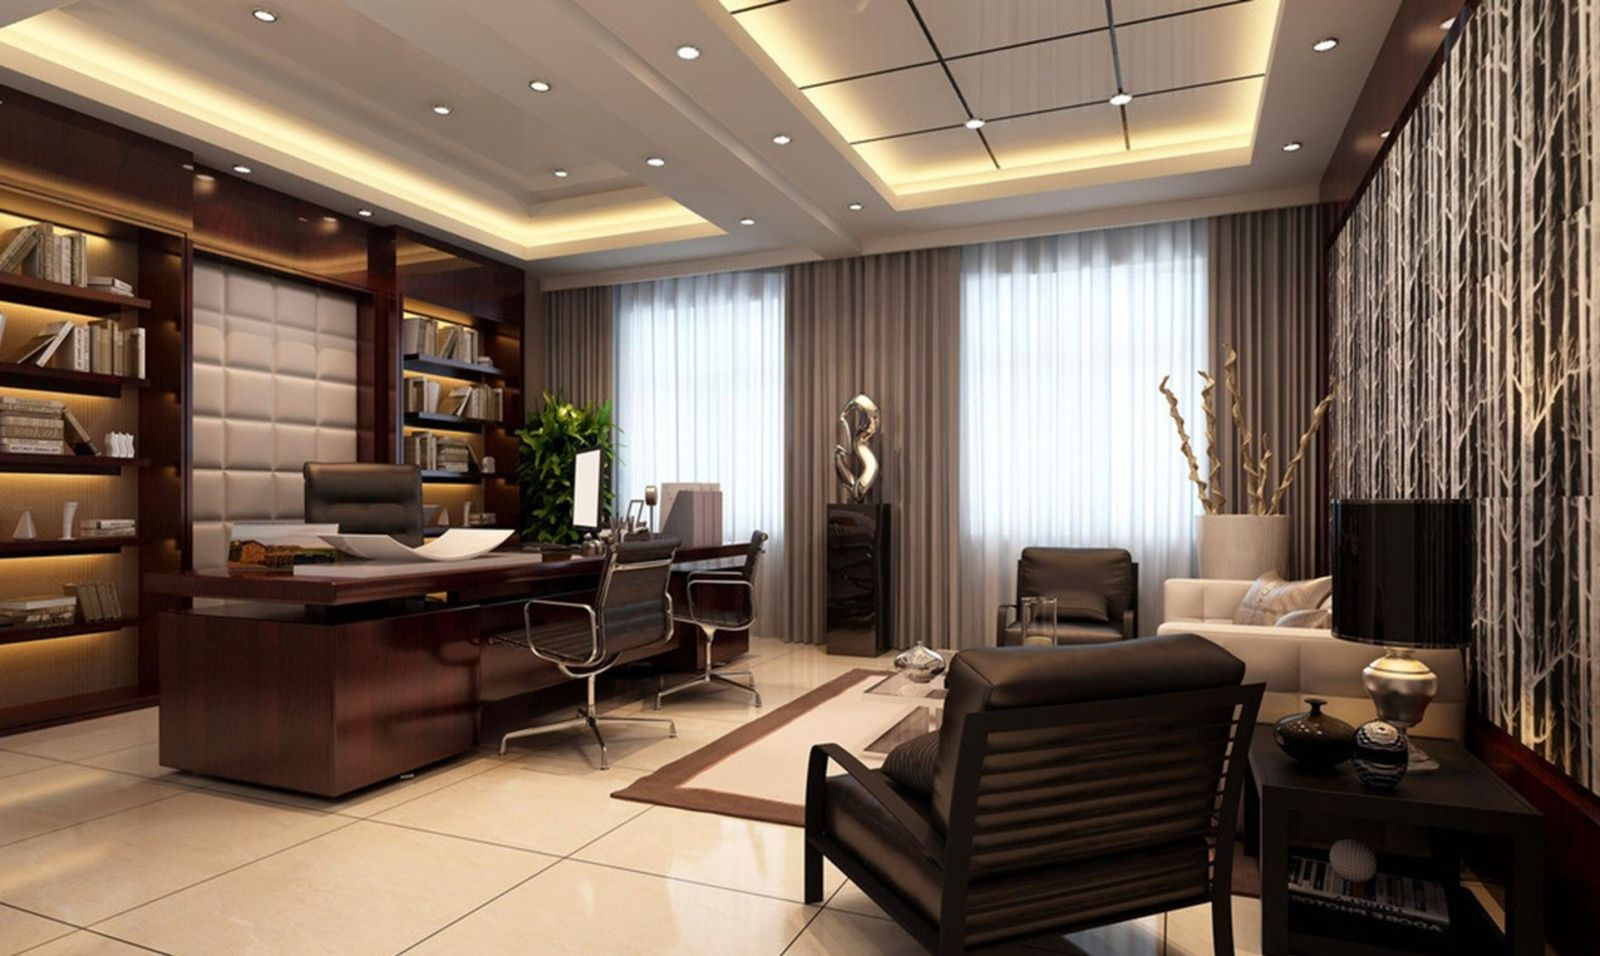 Modern executive office interior design google search for Contemporary office interior design